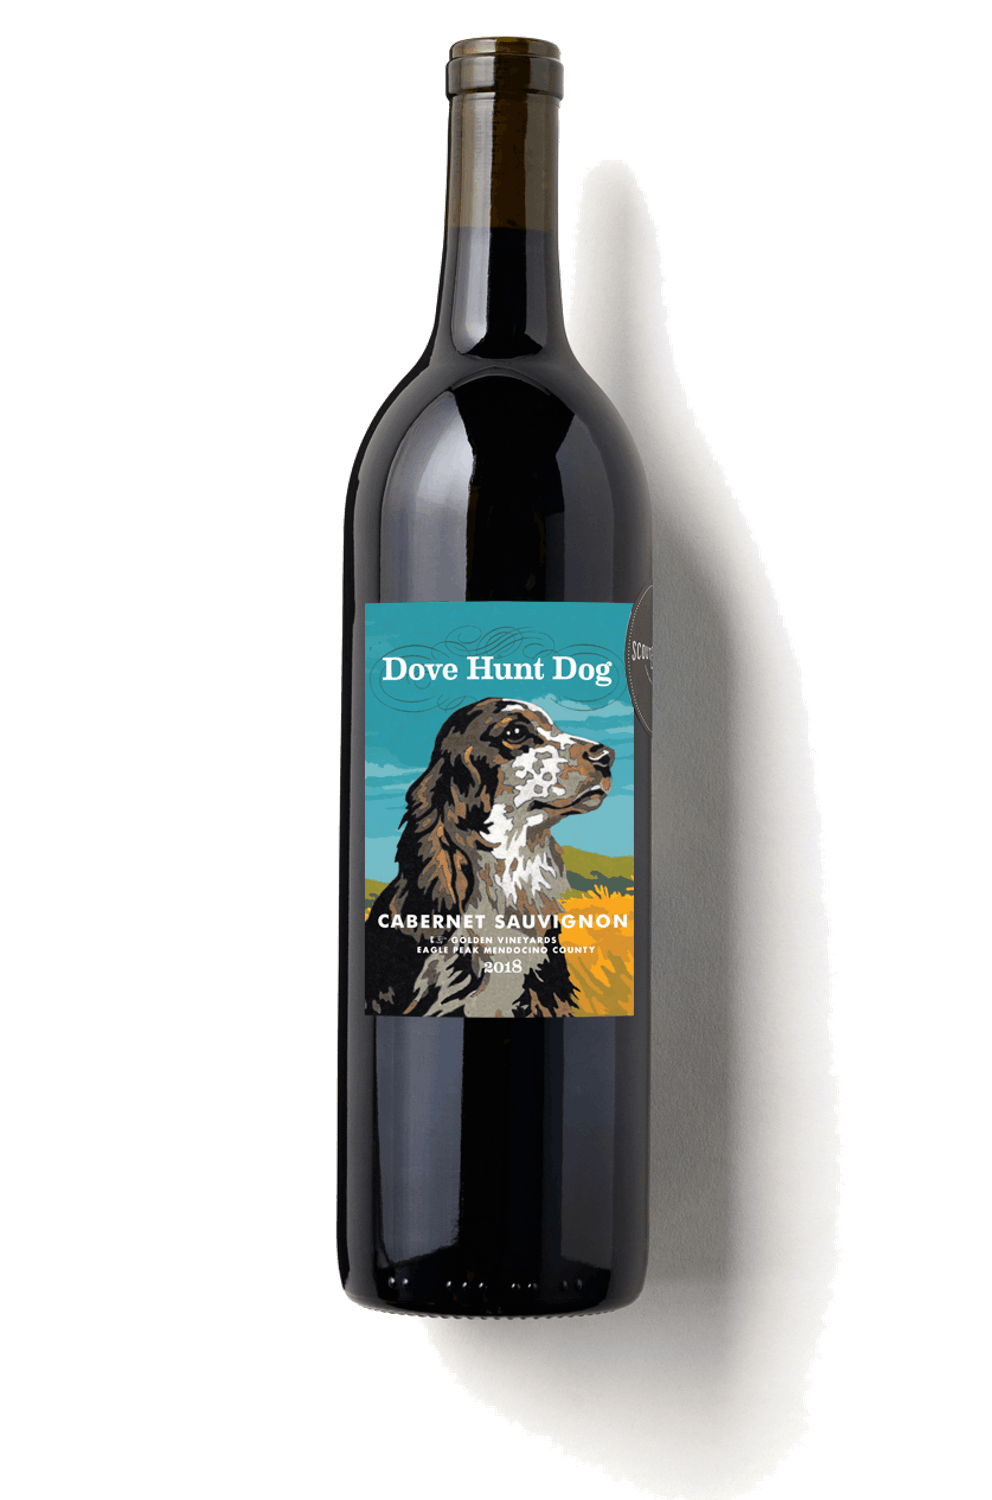 2018 DOVE HUNT DOG CABERNET SAUVIGNON